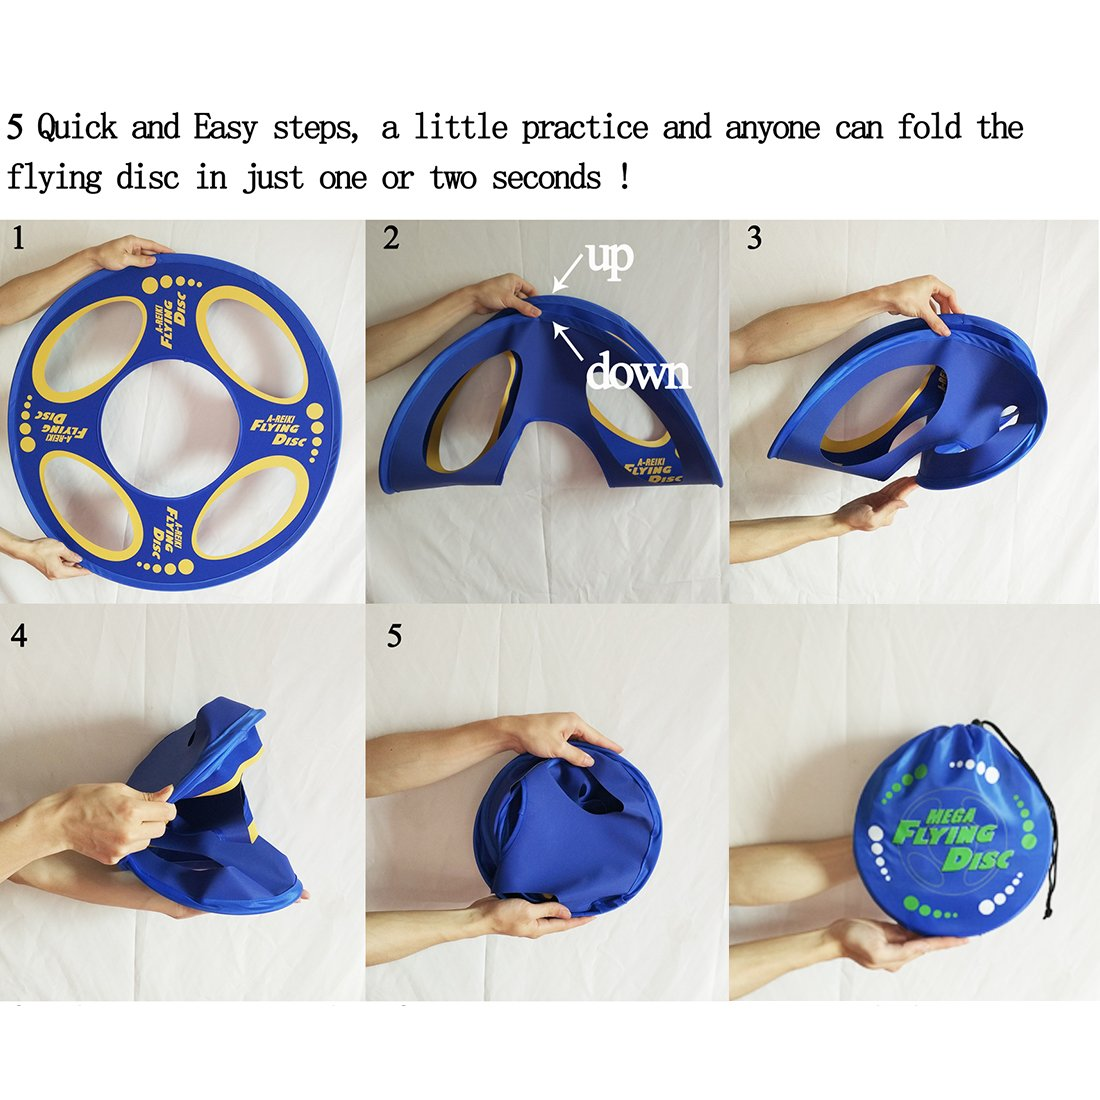 Folding Pocket Frisbee Flyer with Pouch by Hayes